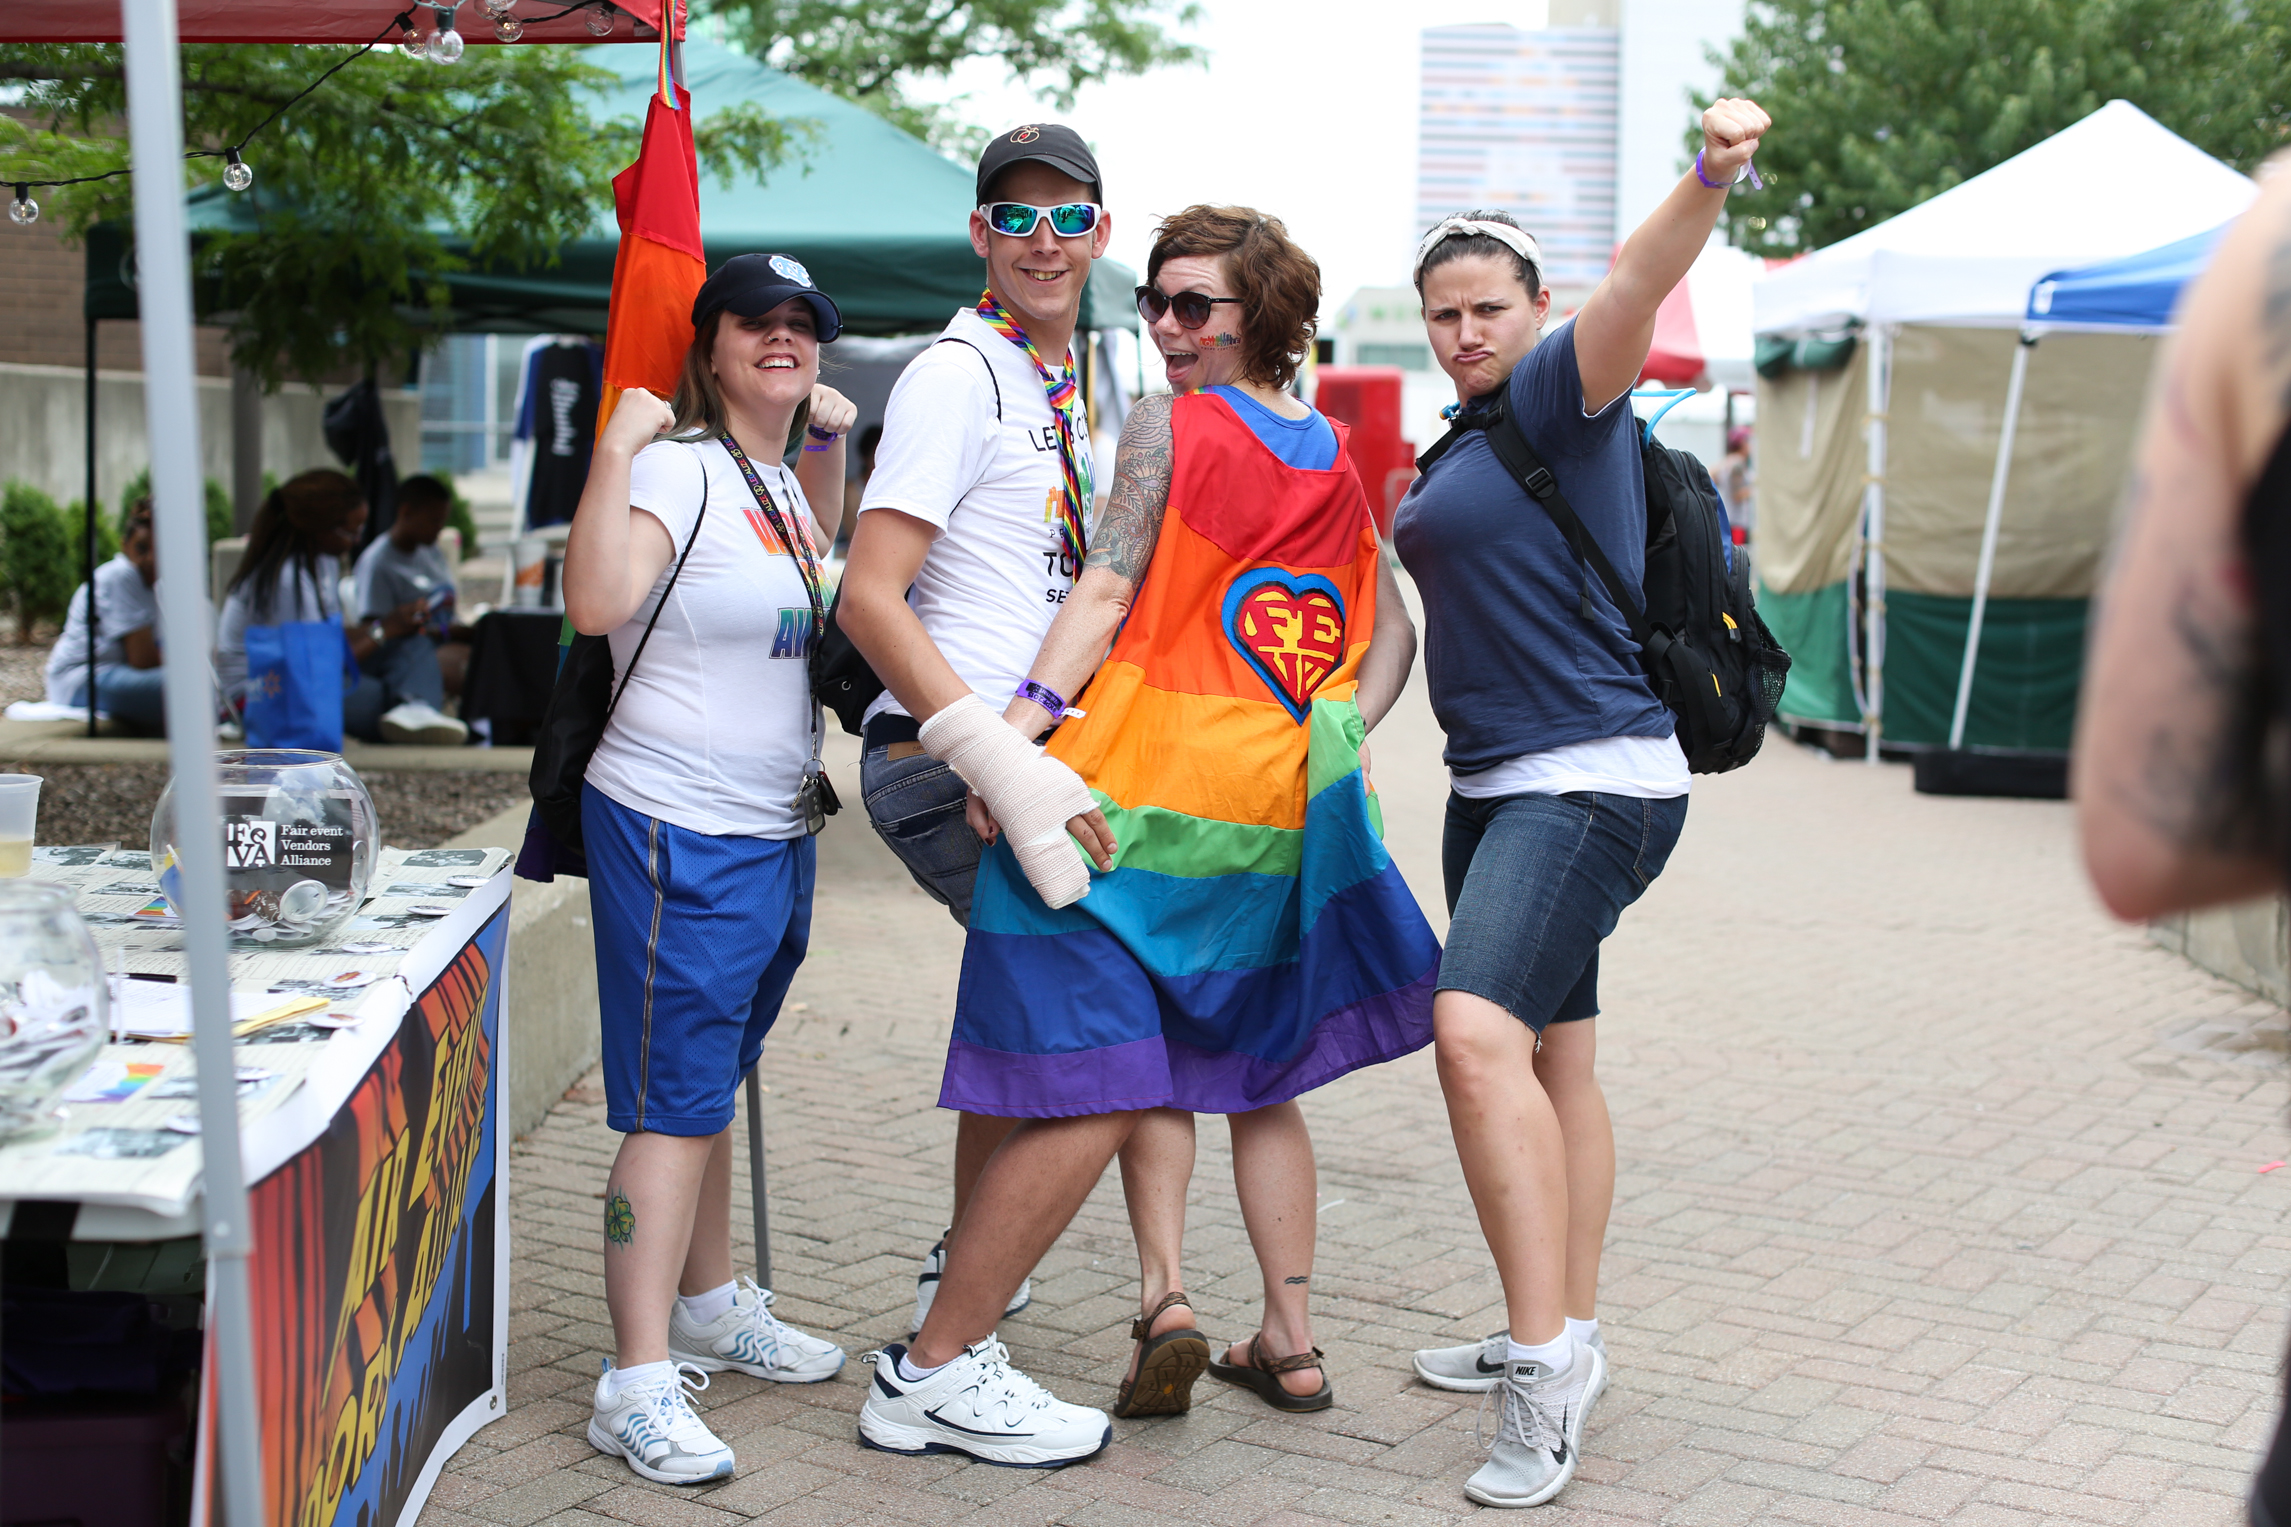 PRIDE W-FEVA 2015 EDITED CRYSTAL LUDWICK PHOTO (54 of 83).jpg